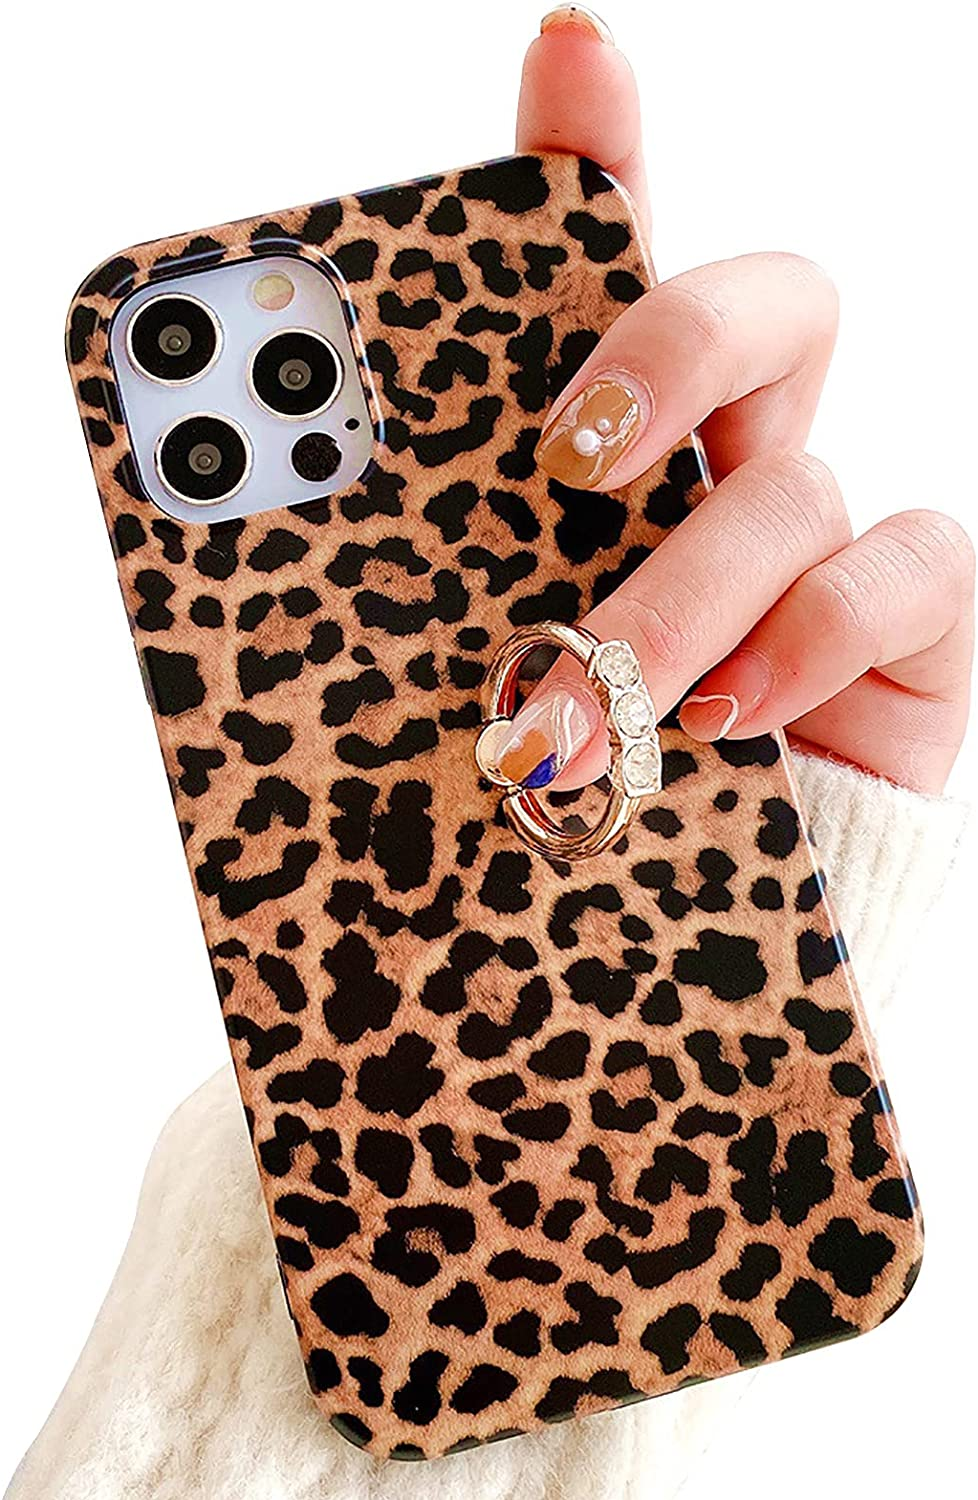 Leopard Print Phone Ring Case for Samsung Galaxy S20 MOIKY Women Diamond Crystal Rhinestone Holder Kickstand Fashion Brown Cheetah Animal Pattern Cute Silicone Shockproof Protective Cover